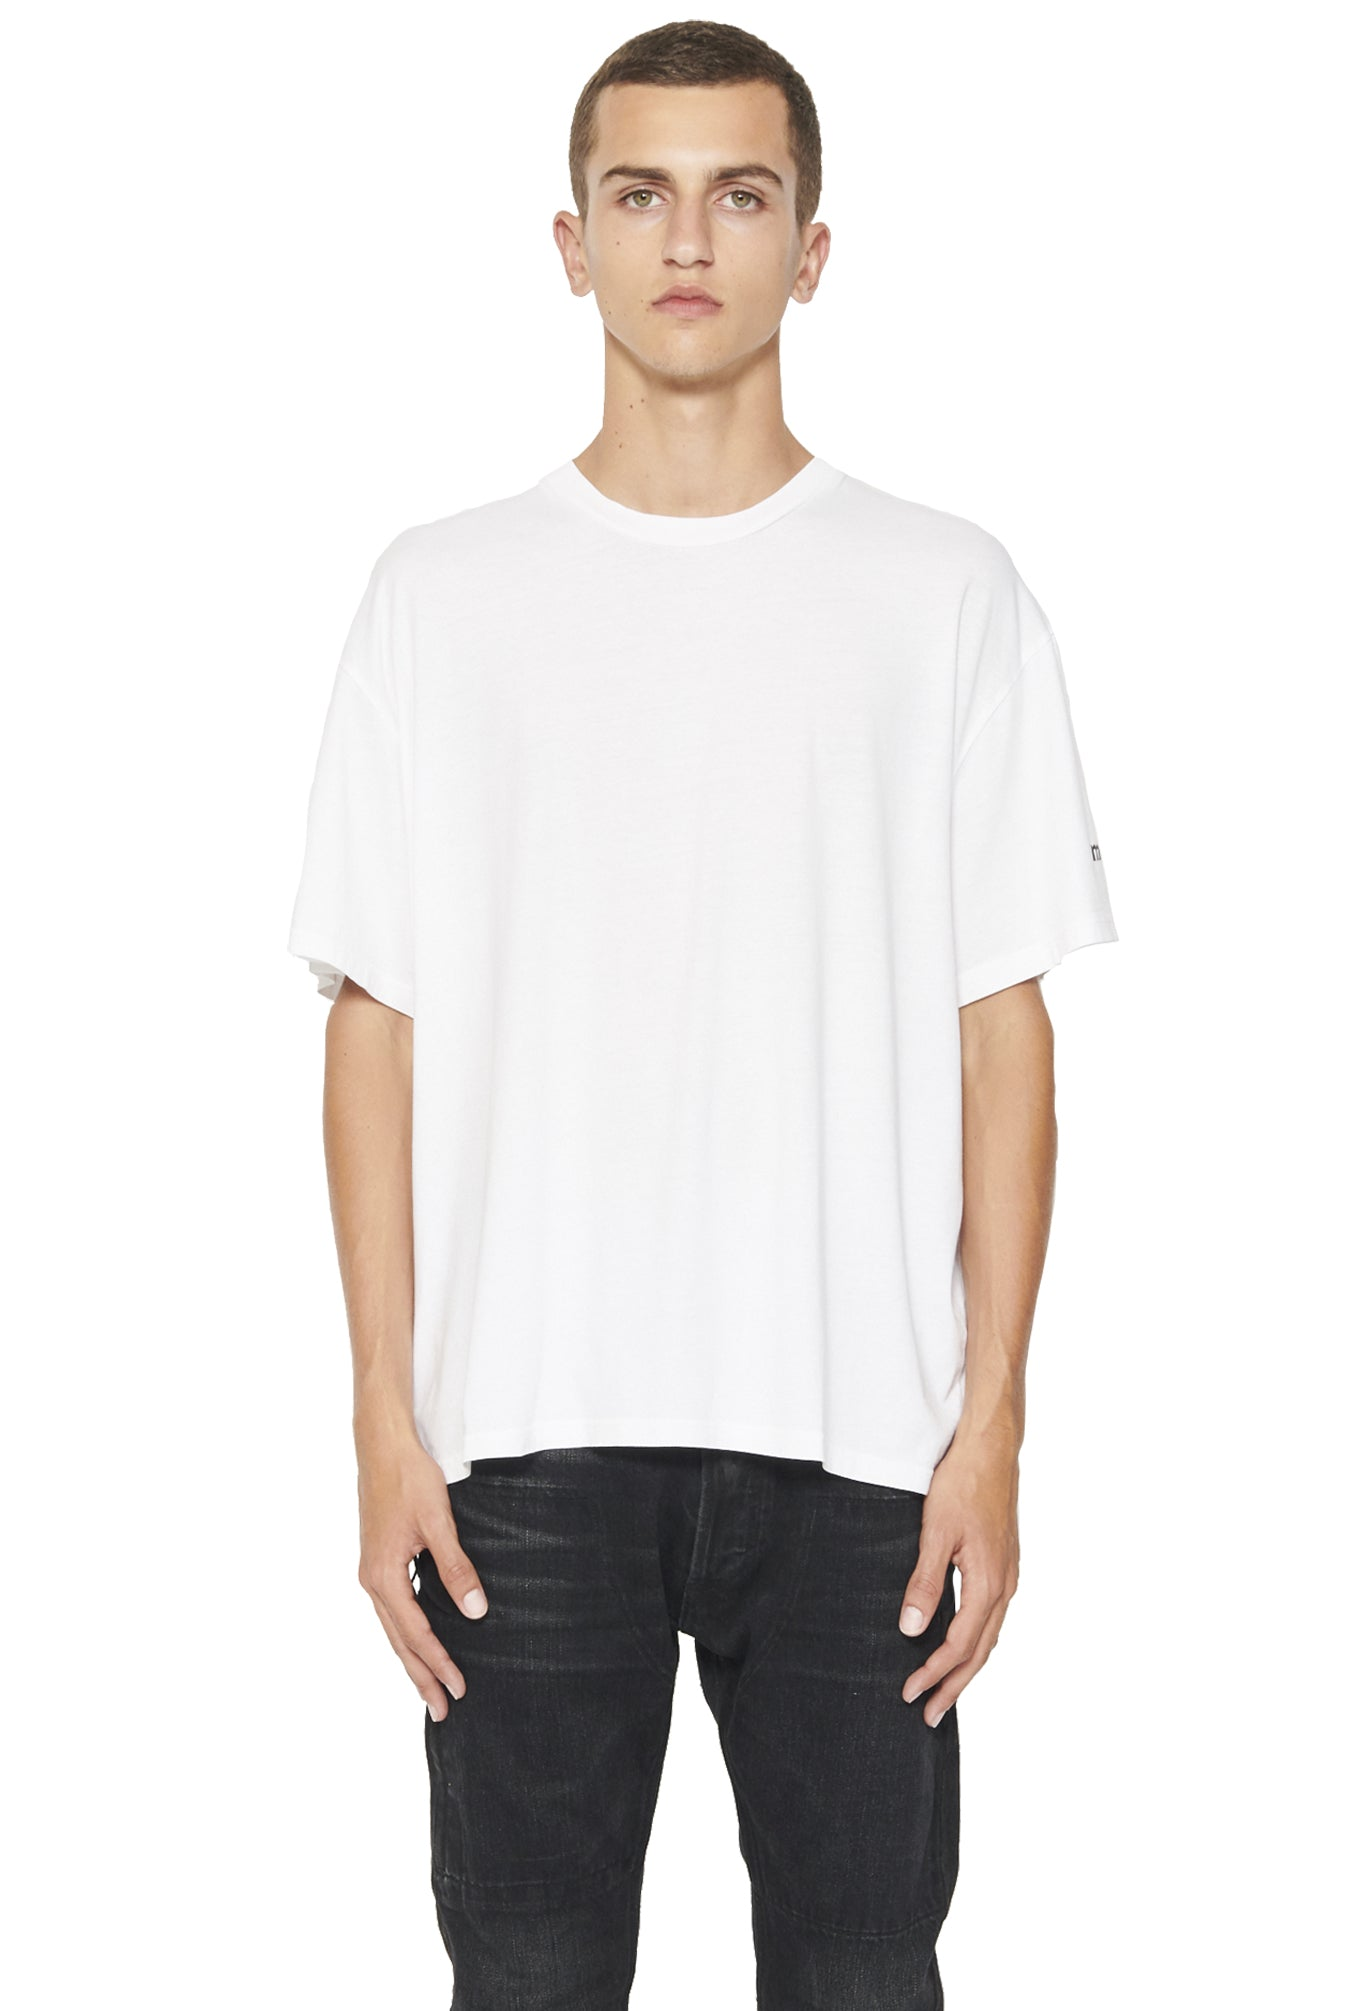 SHORT SLEEVE BOXY T SHIRT - WHITE